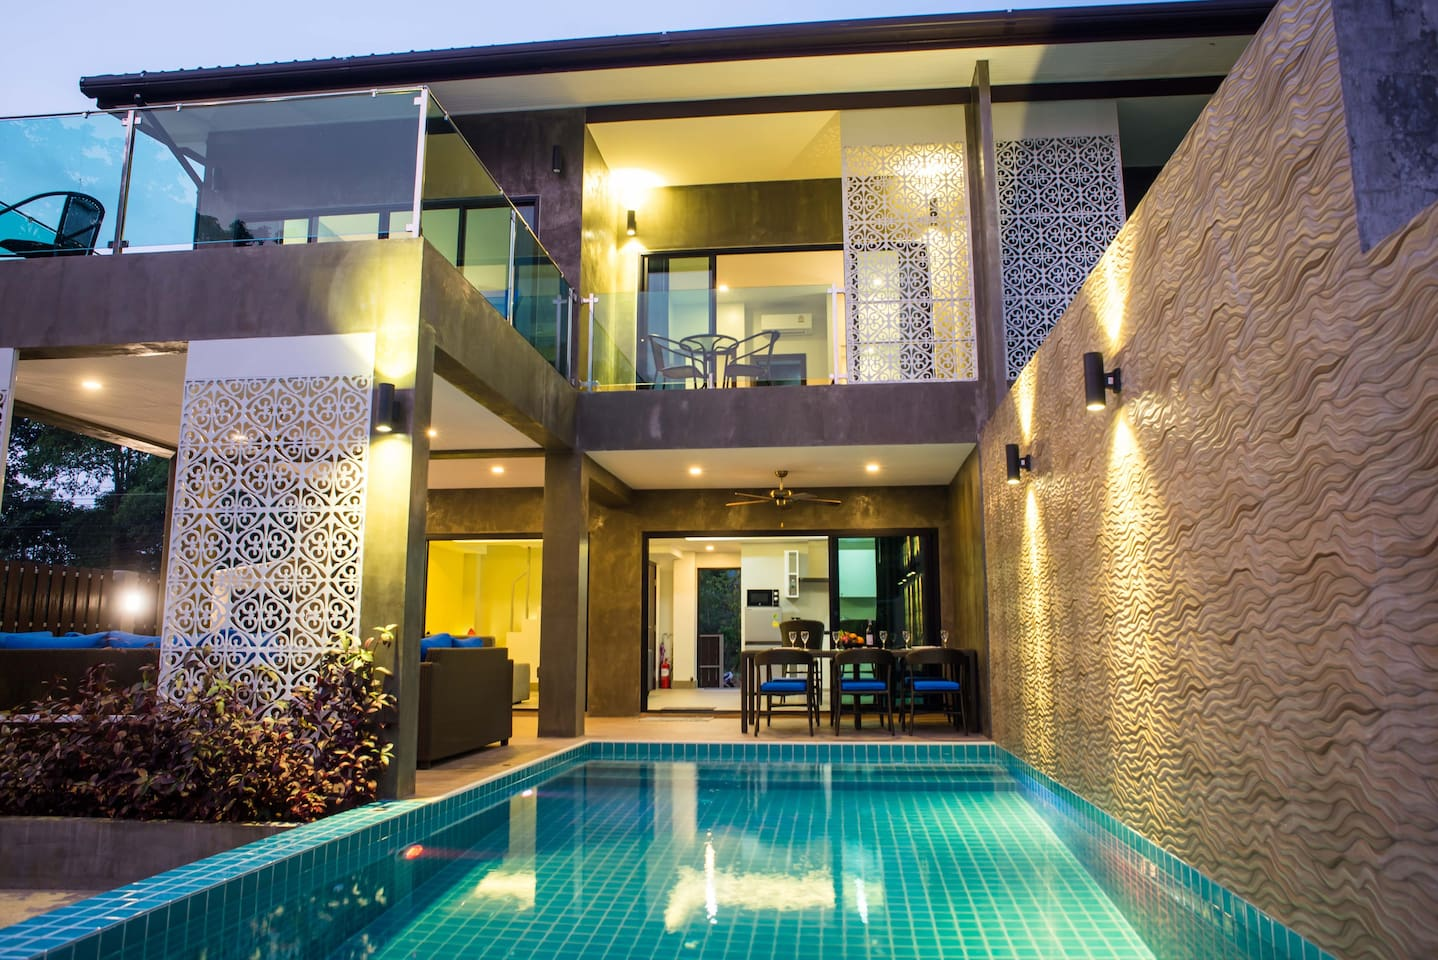 A stylish modern villa with a private pool, large garden and outdoor living space